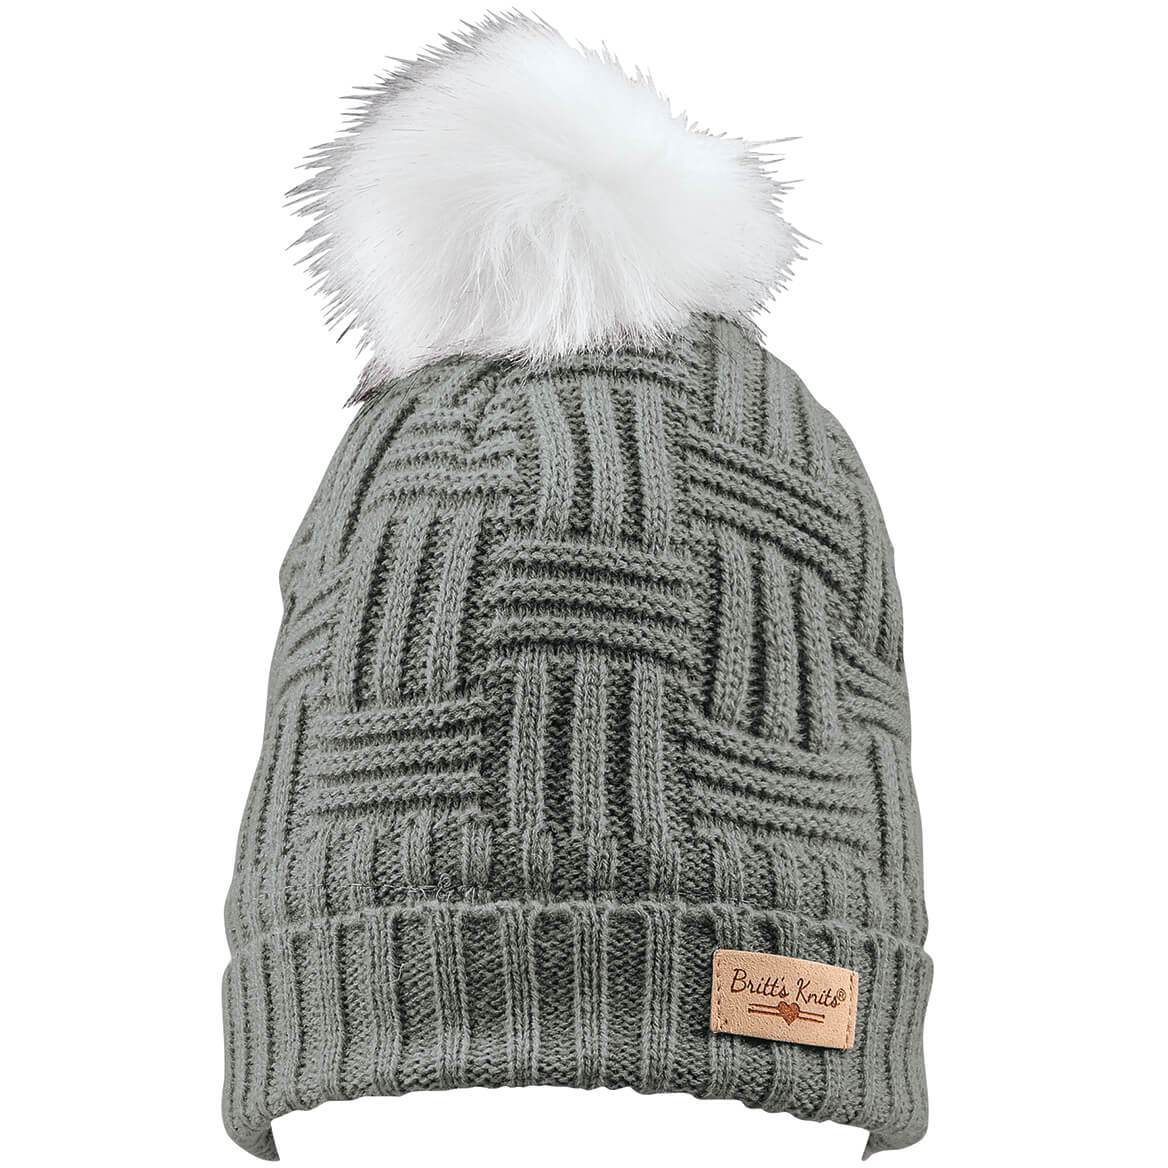 DM - Plush-Lined Knit Beanie with Pom Pom - Knock Your Socks Off